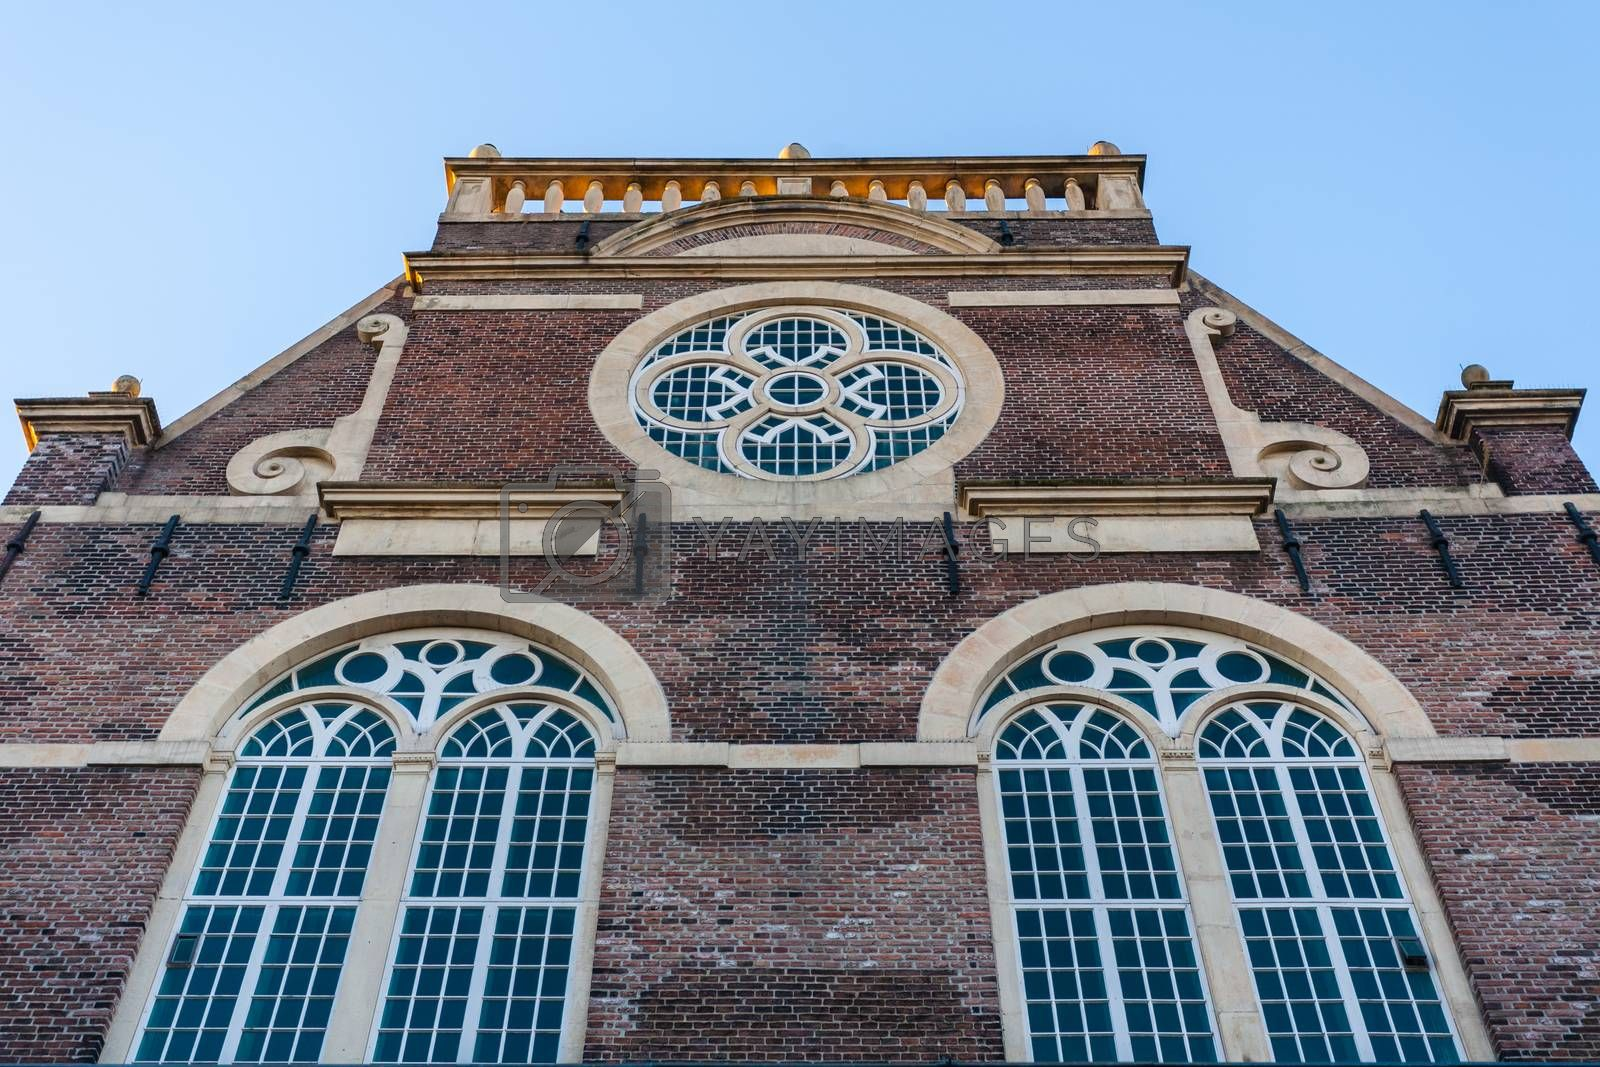 Church facade in Amsterdam with rose window